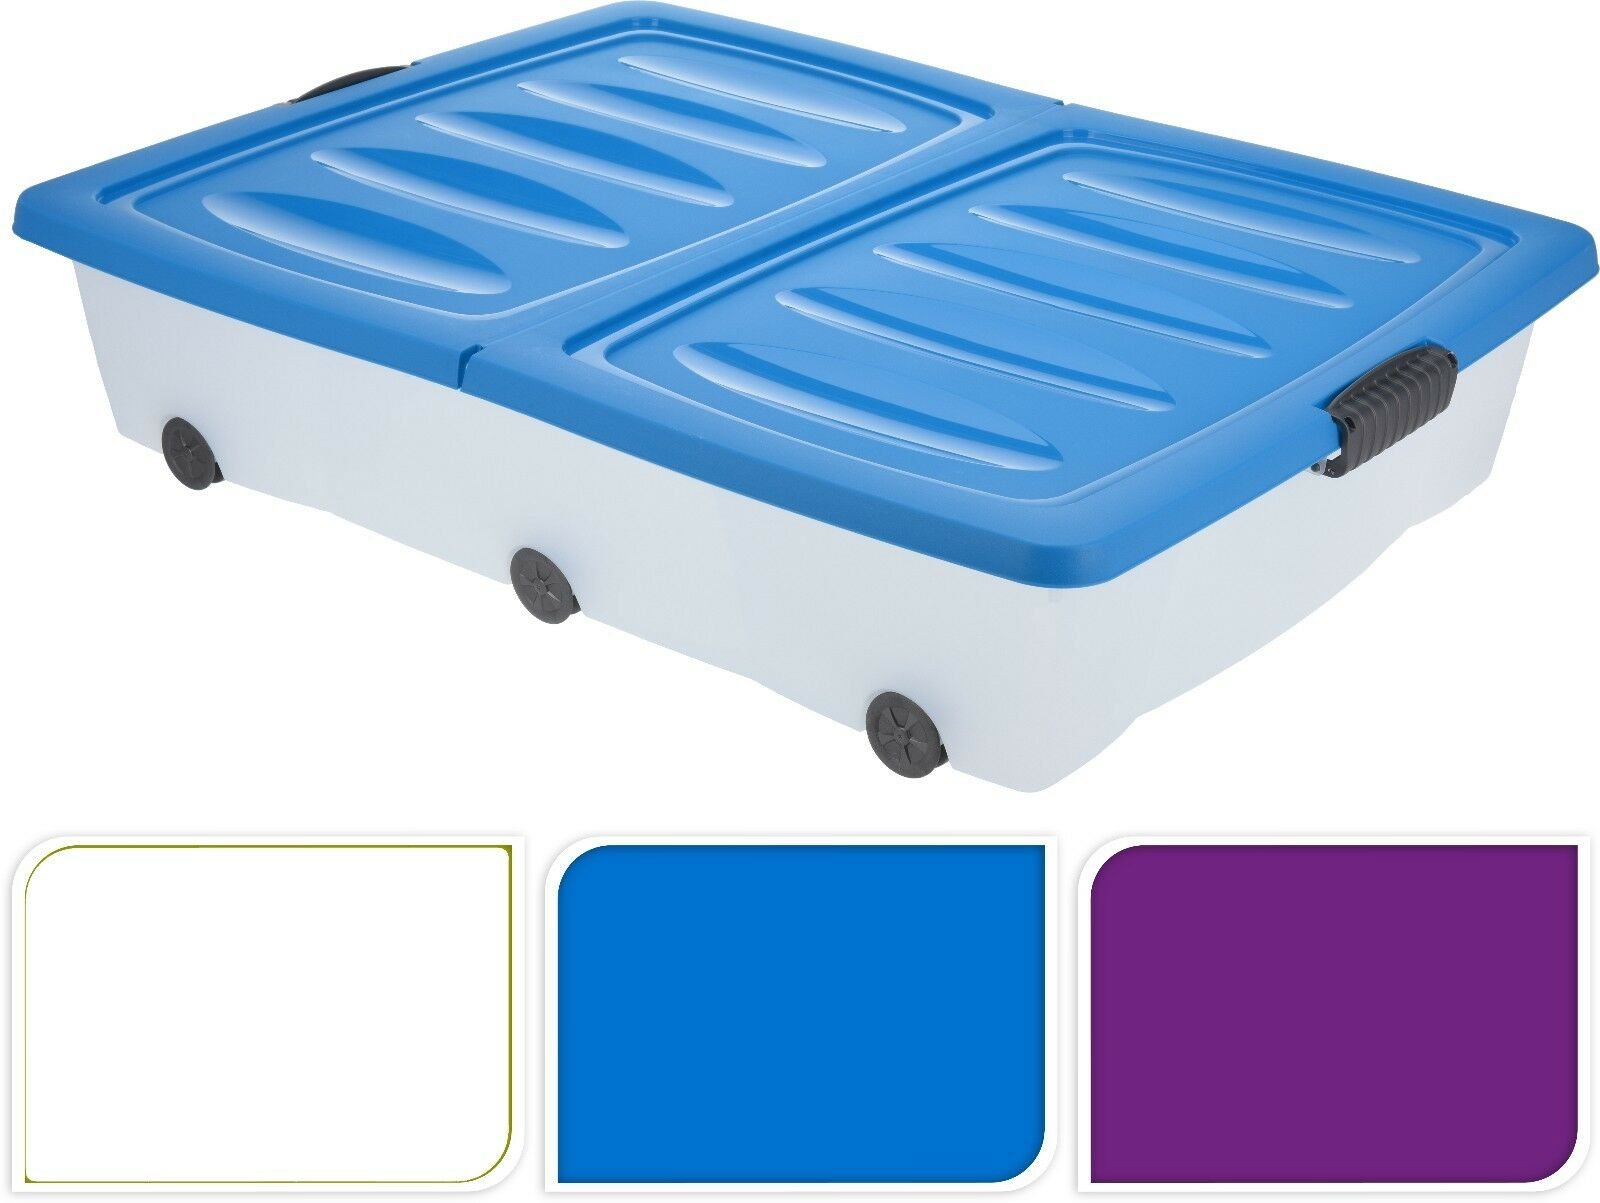 2 x 70L LARGE UNDERBED PLASTIC WHEELED STORAGE BOX CONTAINER WITH FOLDING LID 1 of 2FREE Shipping See More  sc 1 st  PicClick UK & 2 X 70L LARGE UNDERBED PLASTIC WHEELED STORAGE BOX CONTAINER WITH ...